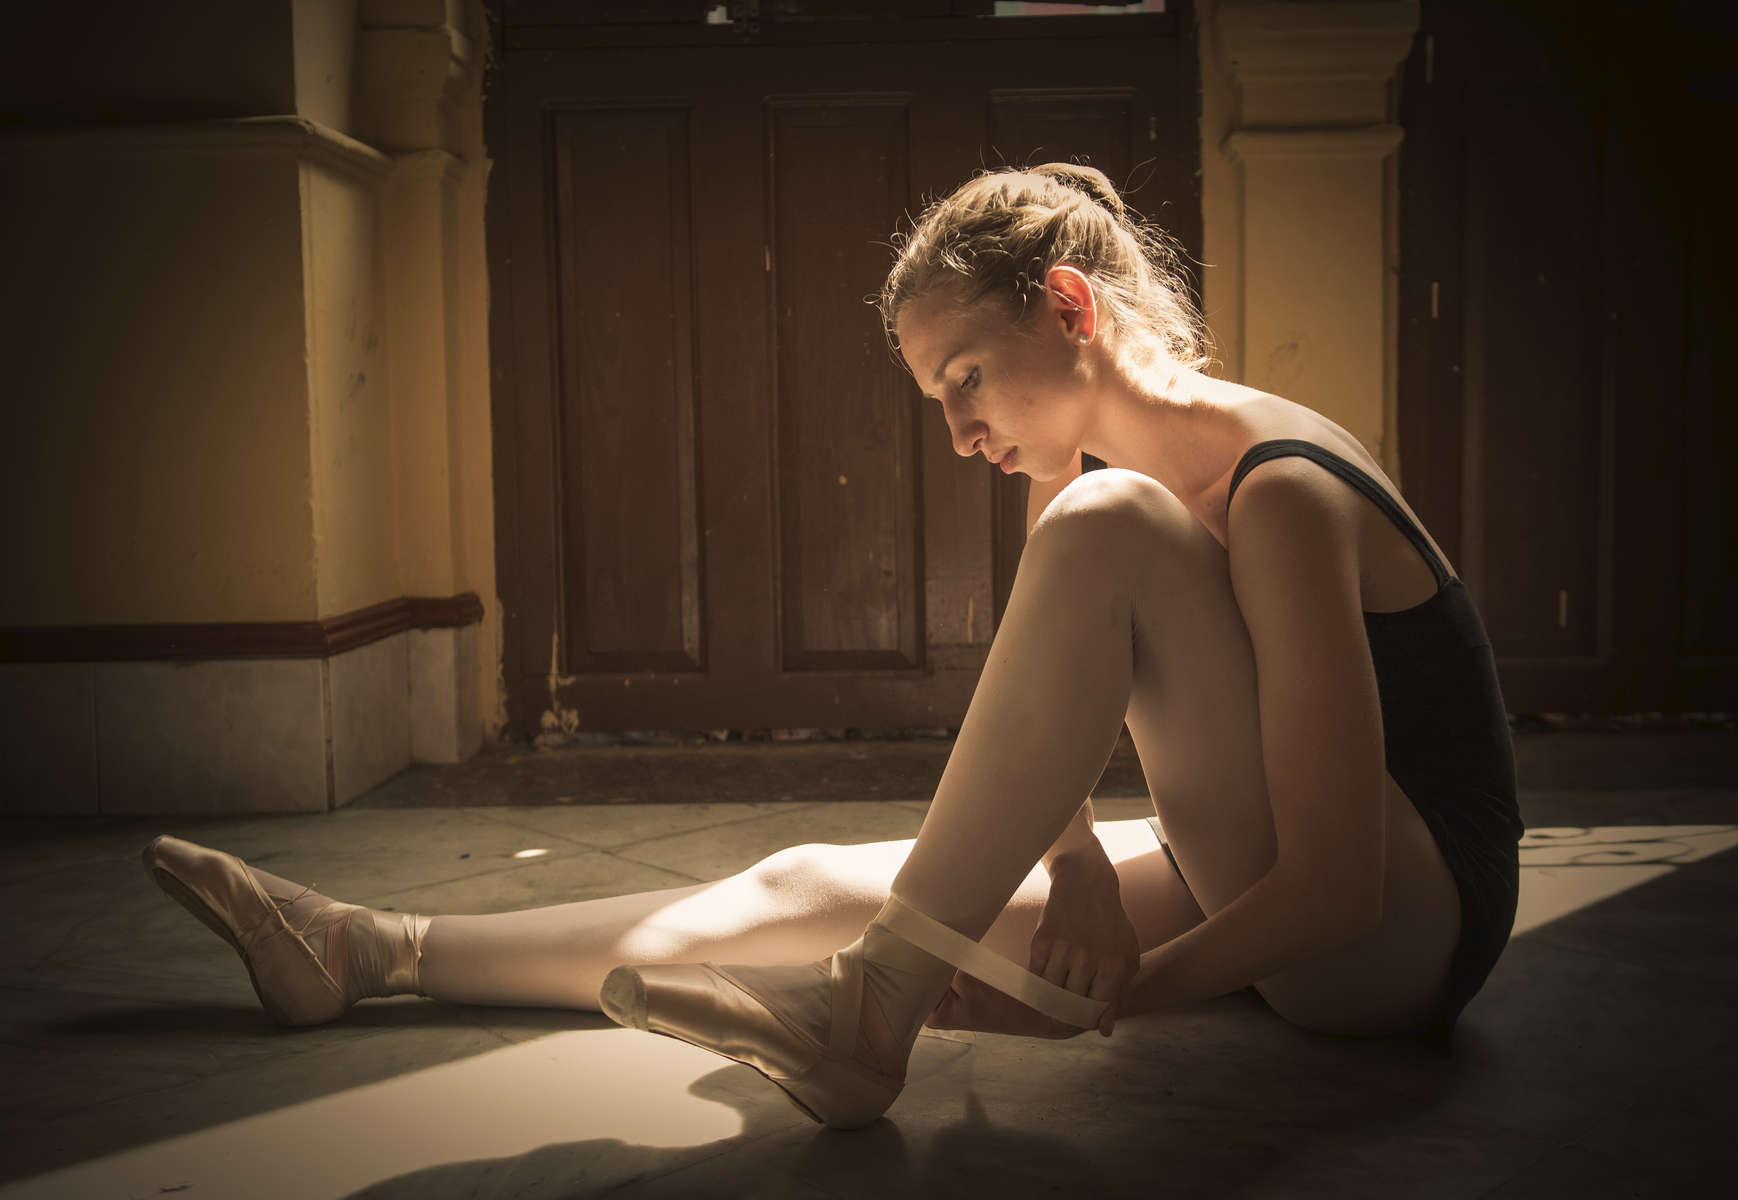 Catherine Conley laces up her pointe shoes prior to class at the Cuban National School of Ballet in Havana, March 13, 2017. ©2018 Alex Garcia